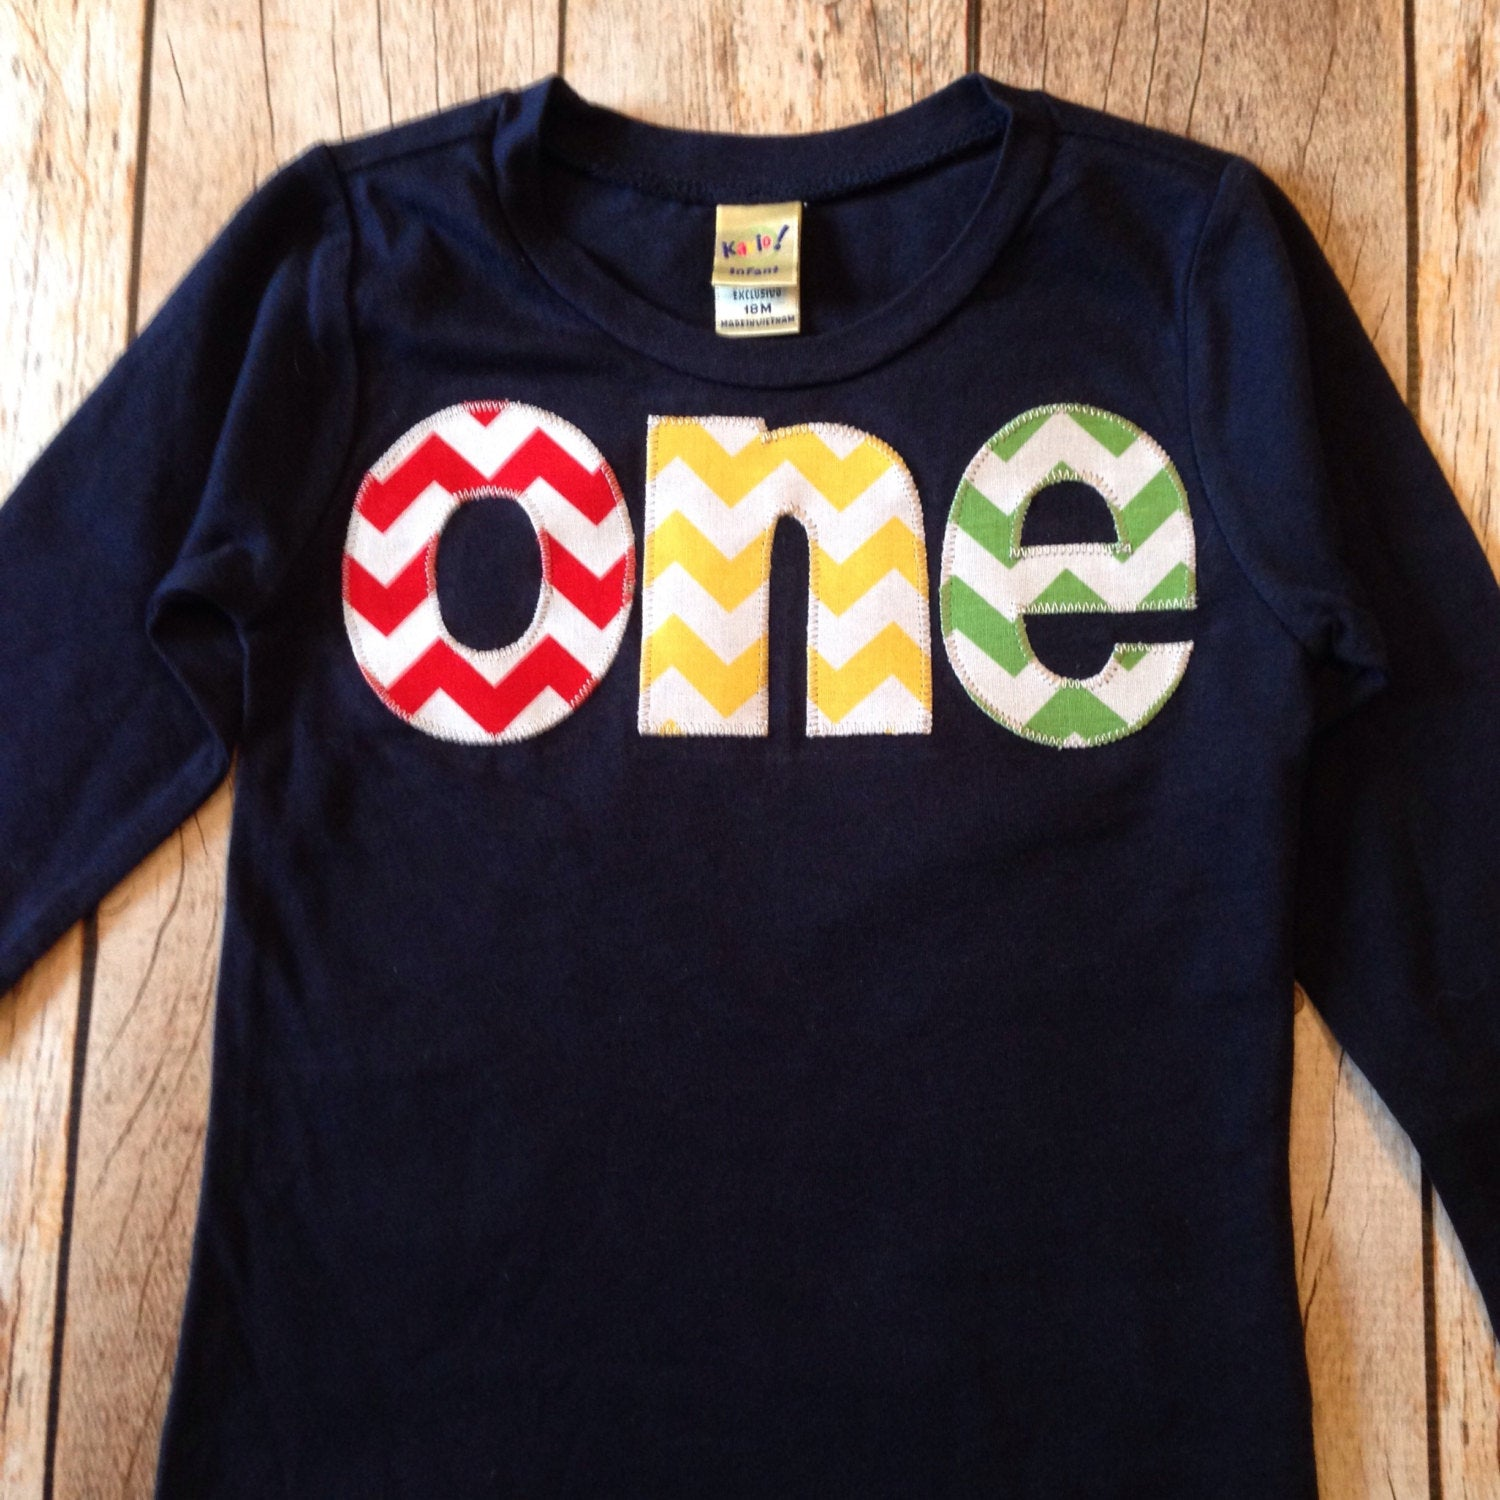 Balloons birthday shirt one 1st Birthday Shirt kids fall outfit primary colors chevron Boy Party red blue yellow green navy balls hot air